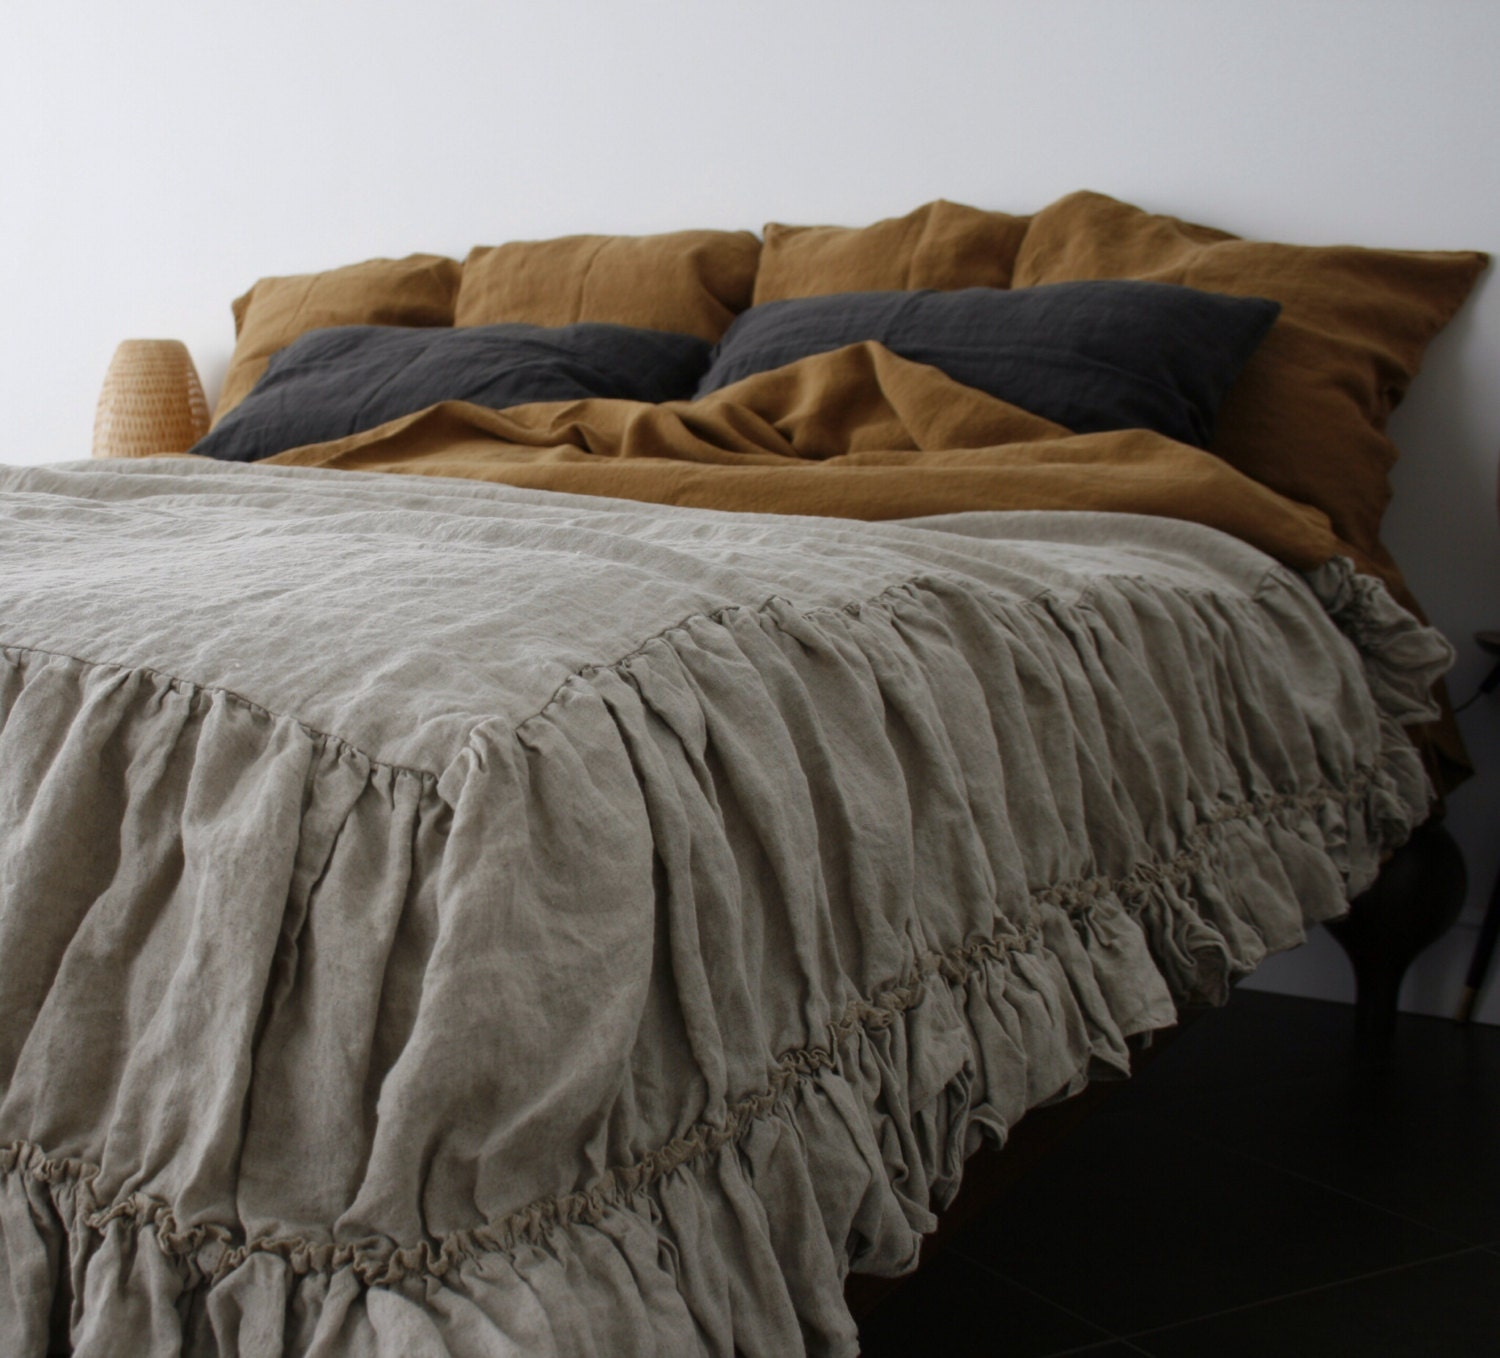 You searched for: linen bedding! Etsy is the home to thousands of handmade, vintage, and one-of-a-kind products and gifts related to your search. No matter what you're looking for or where you are in the world, our global marketplace of sellers can help you find unique and affordable options. Let's get started!